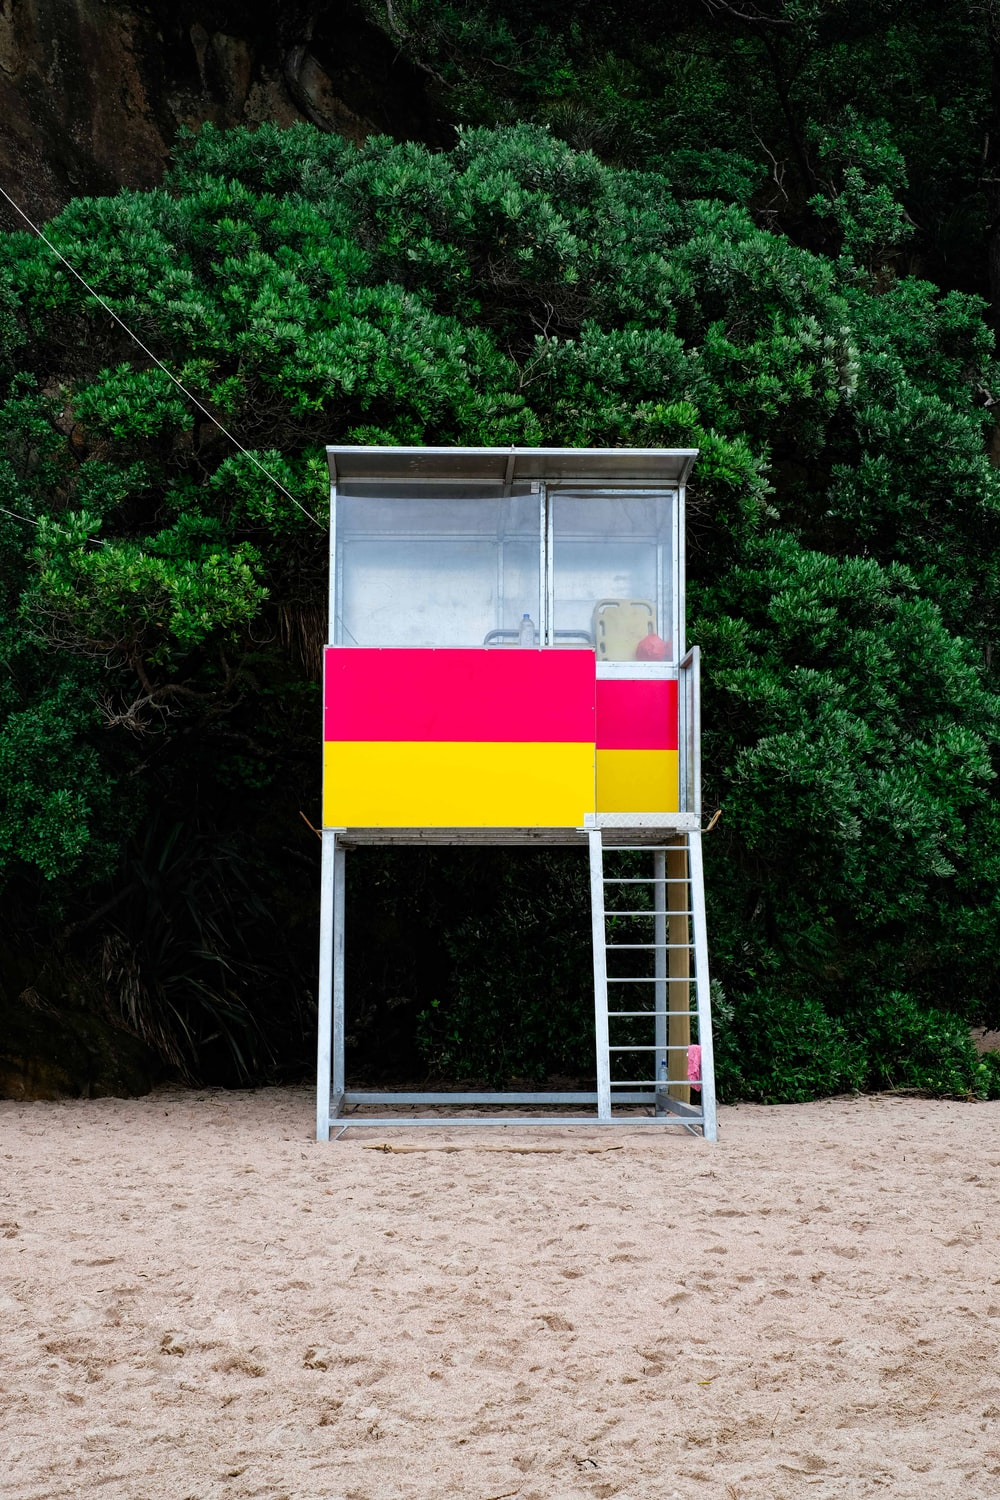 stainless steel lifeguard house beside green tree